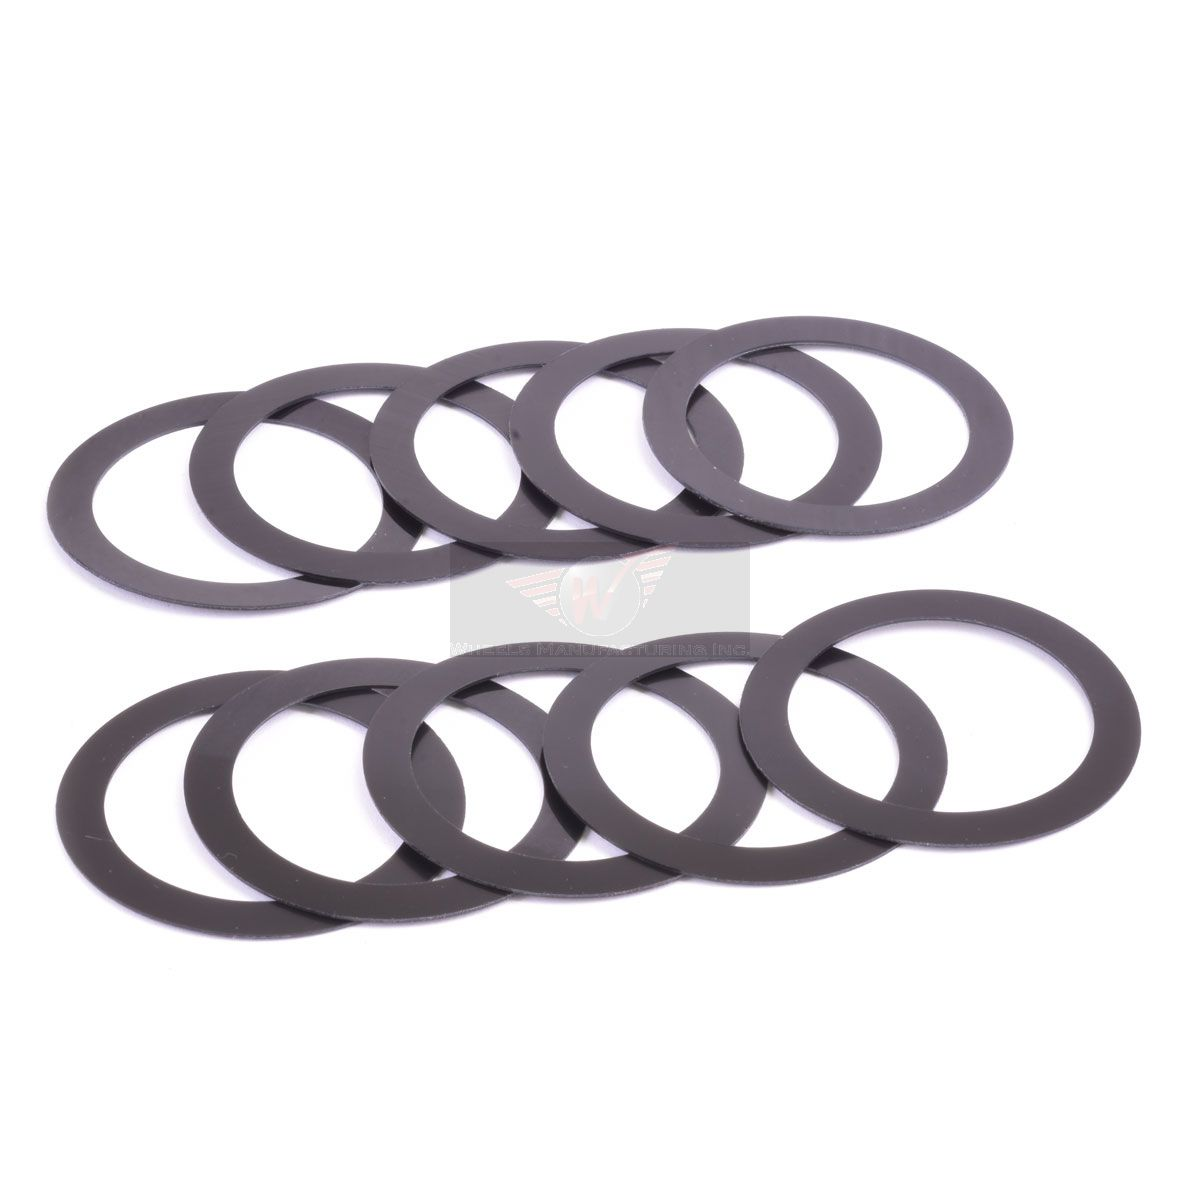 New Wheels Manufacturing 0.5mm Spacers for 24mm Spindles Pack//10